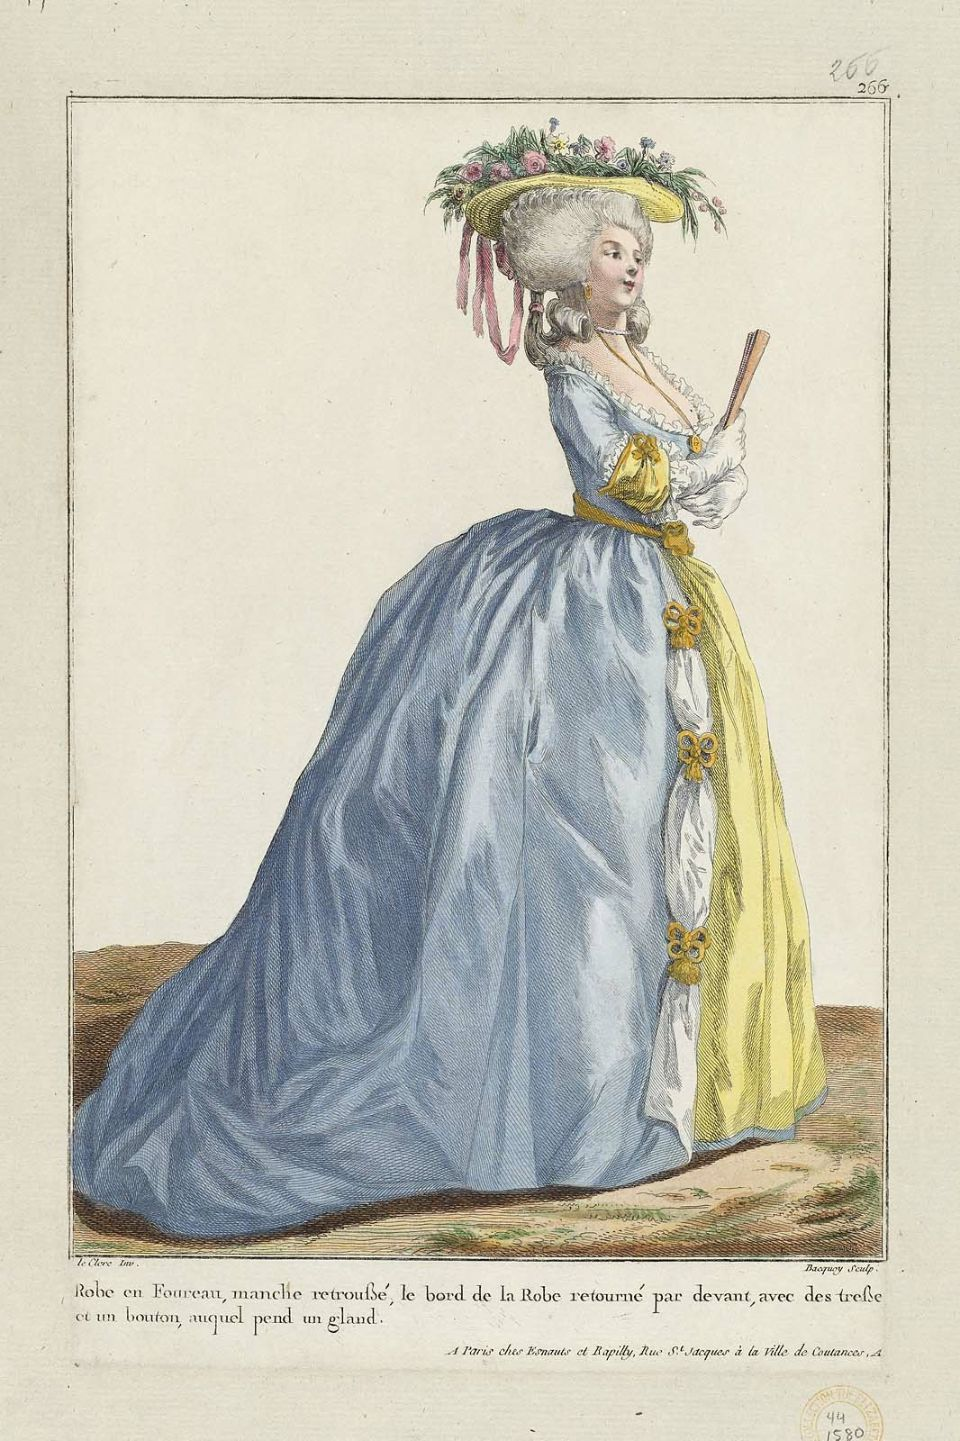 Hand Colored Engraving On Laid Paper Designed By Pierre Thomas Leclerc French About 1740 After 18th Century Costume 18th Century Fashion Historical Fashion